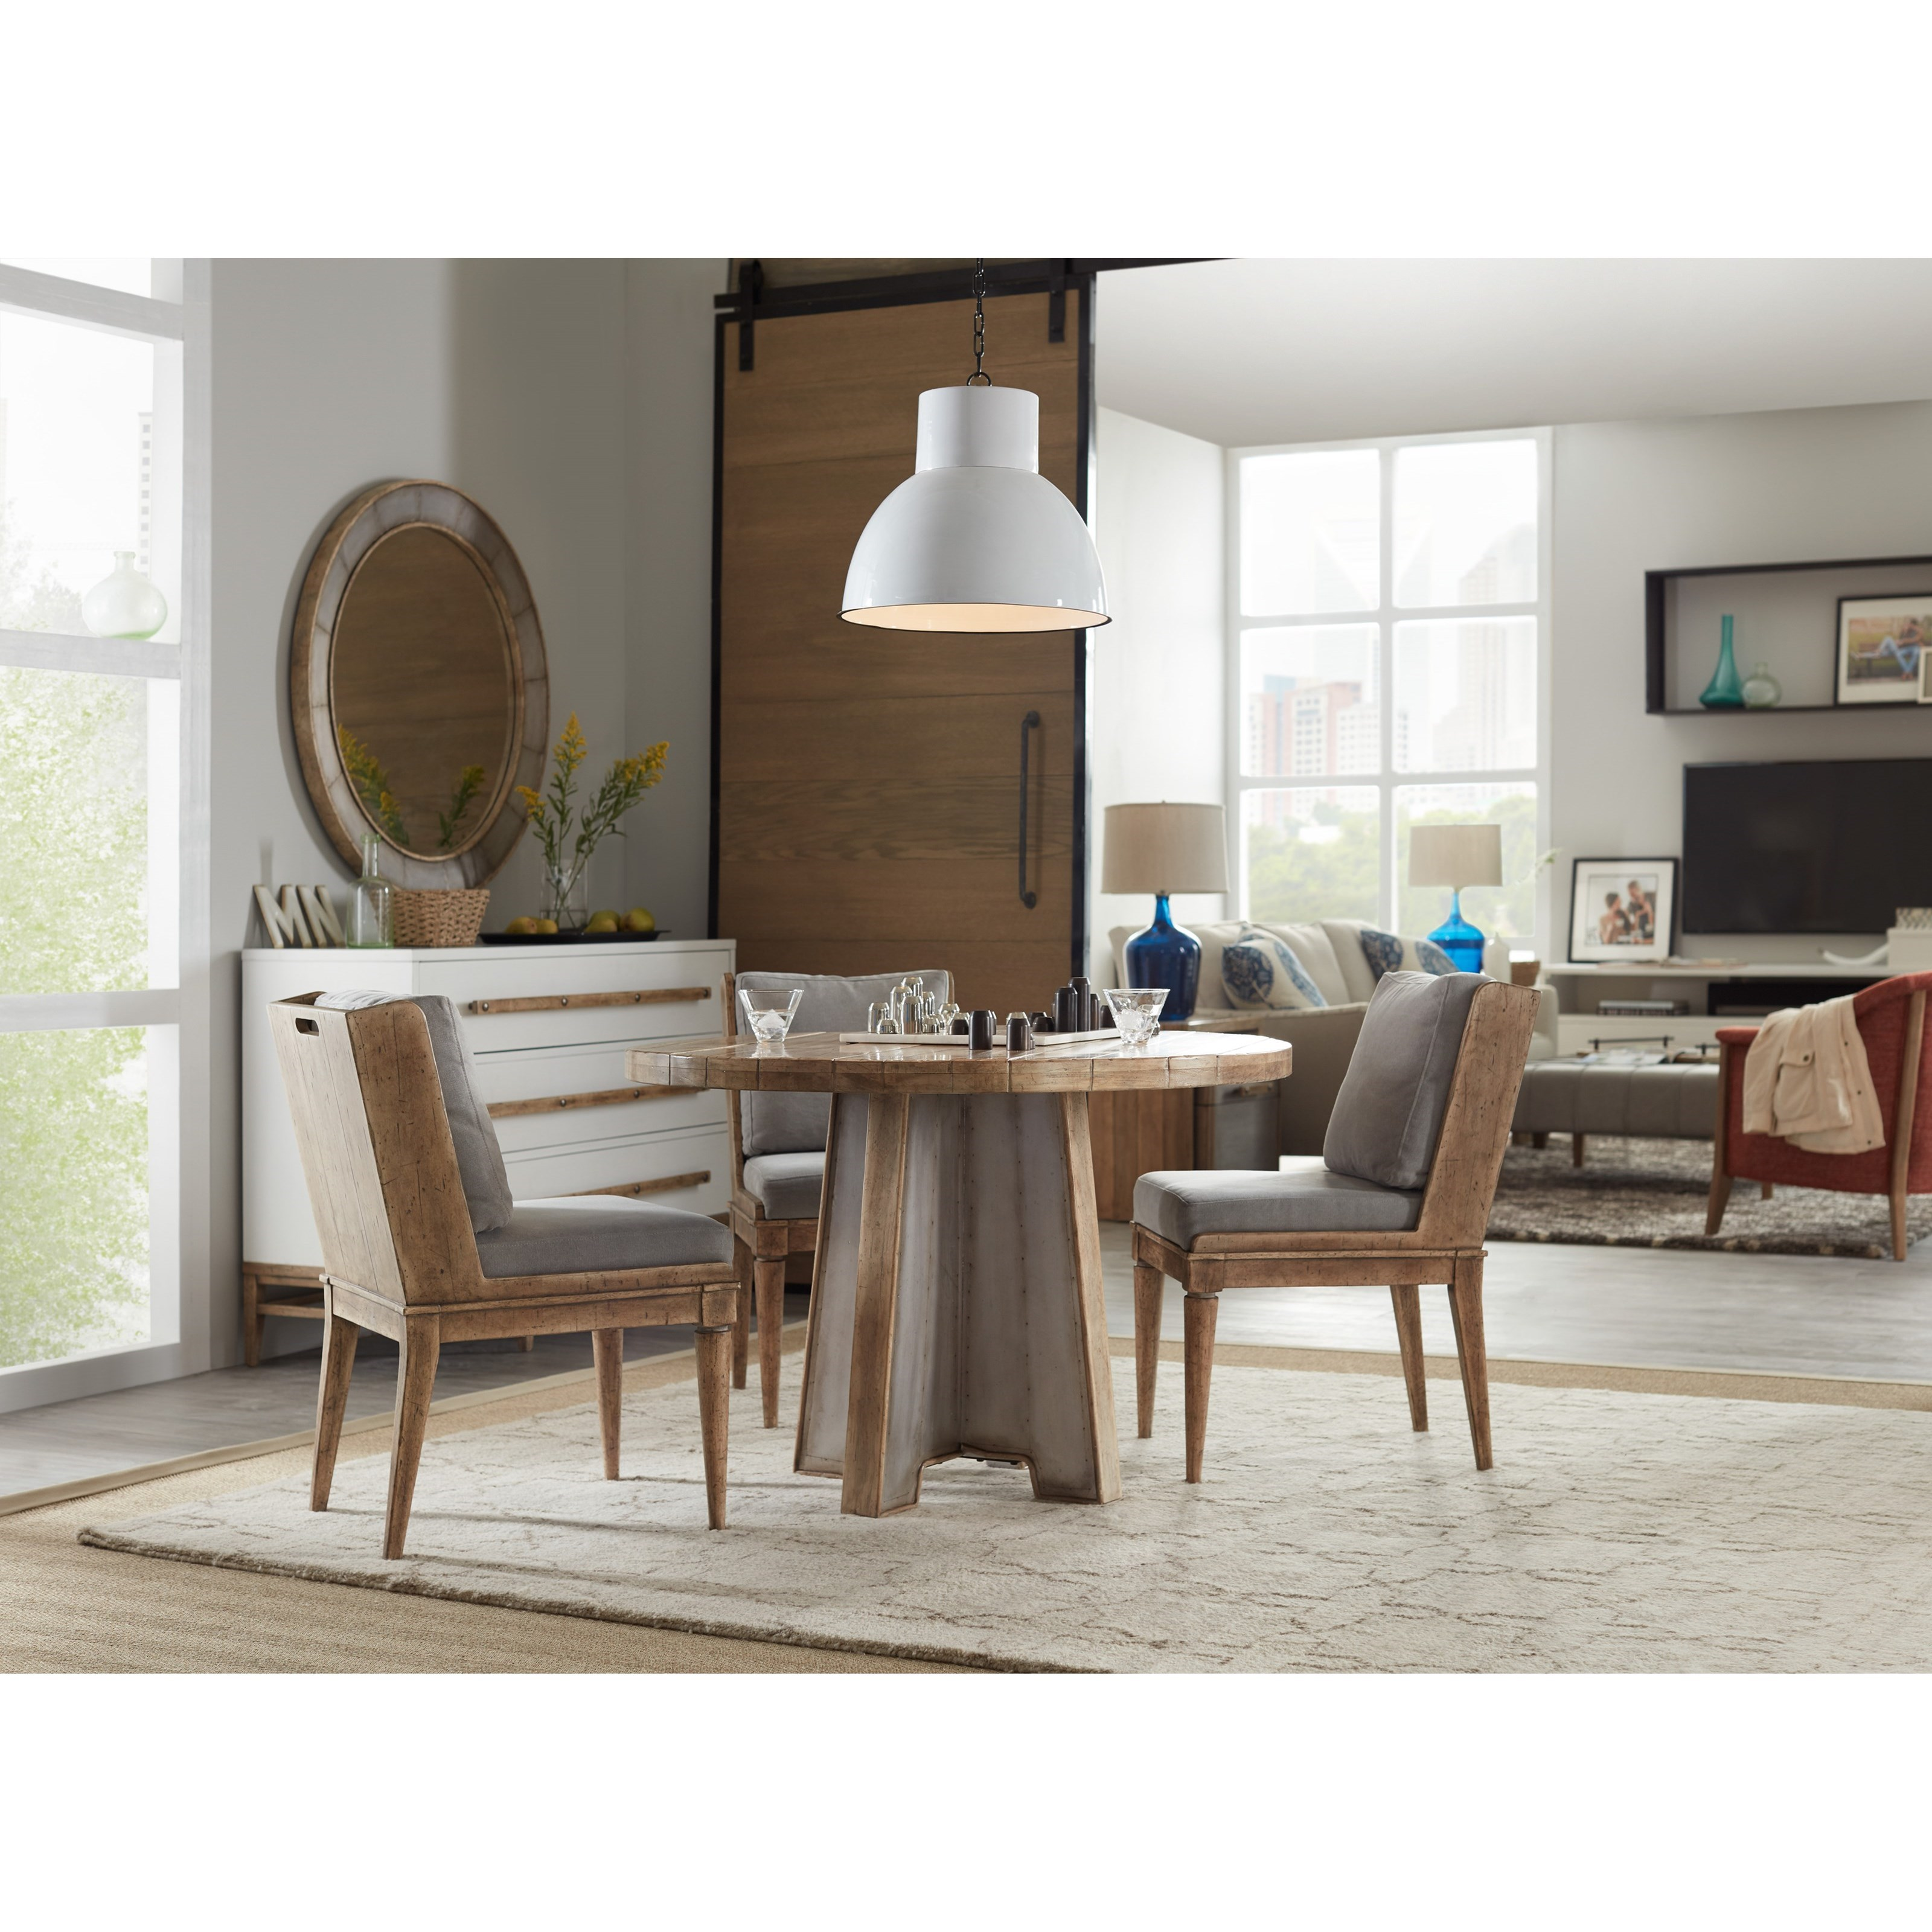 Best Modern Dining Room Chairs Life On Elm St: Hooker Furniture American Life-Urban Elevation 44in Metal